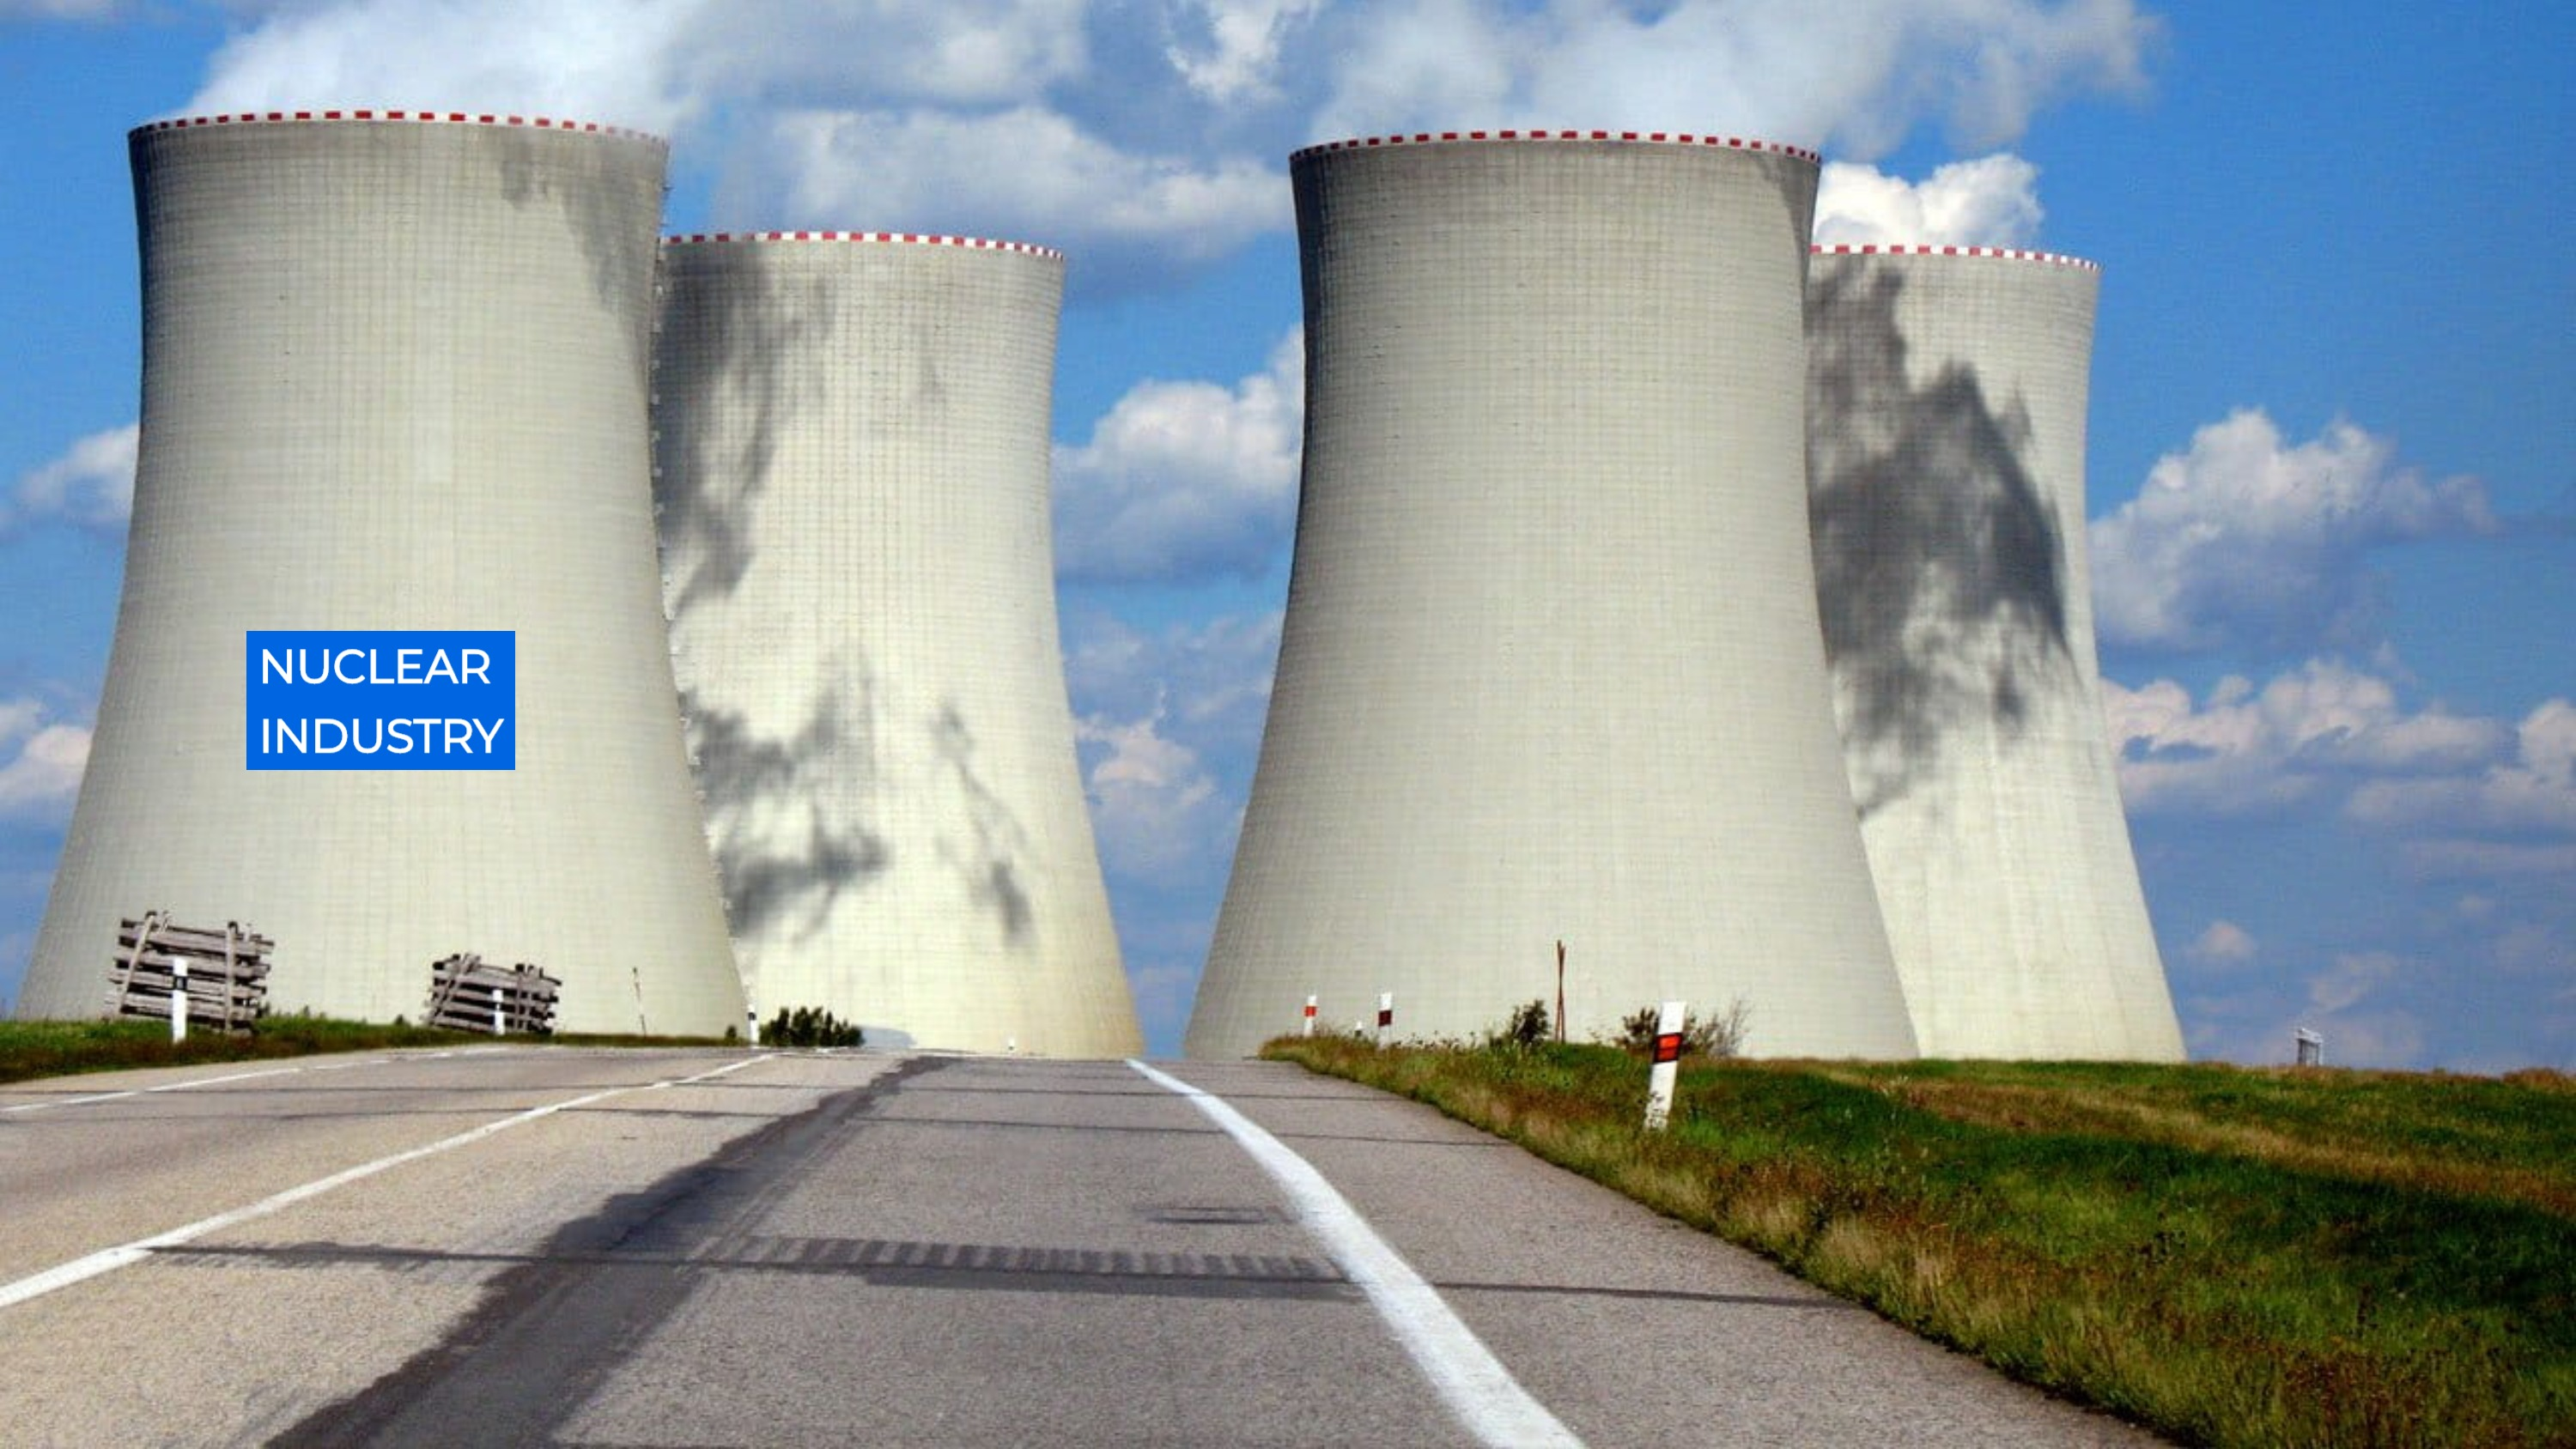 Nuclear Industry - Nuclear Energy - Nuclear Power Sector - Cooling Towers in process - Industrial Va